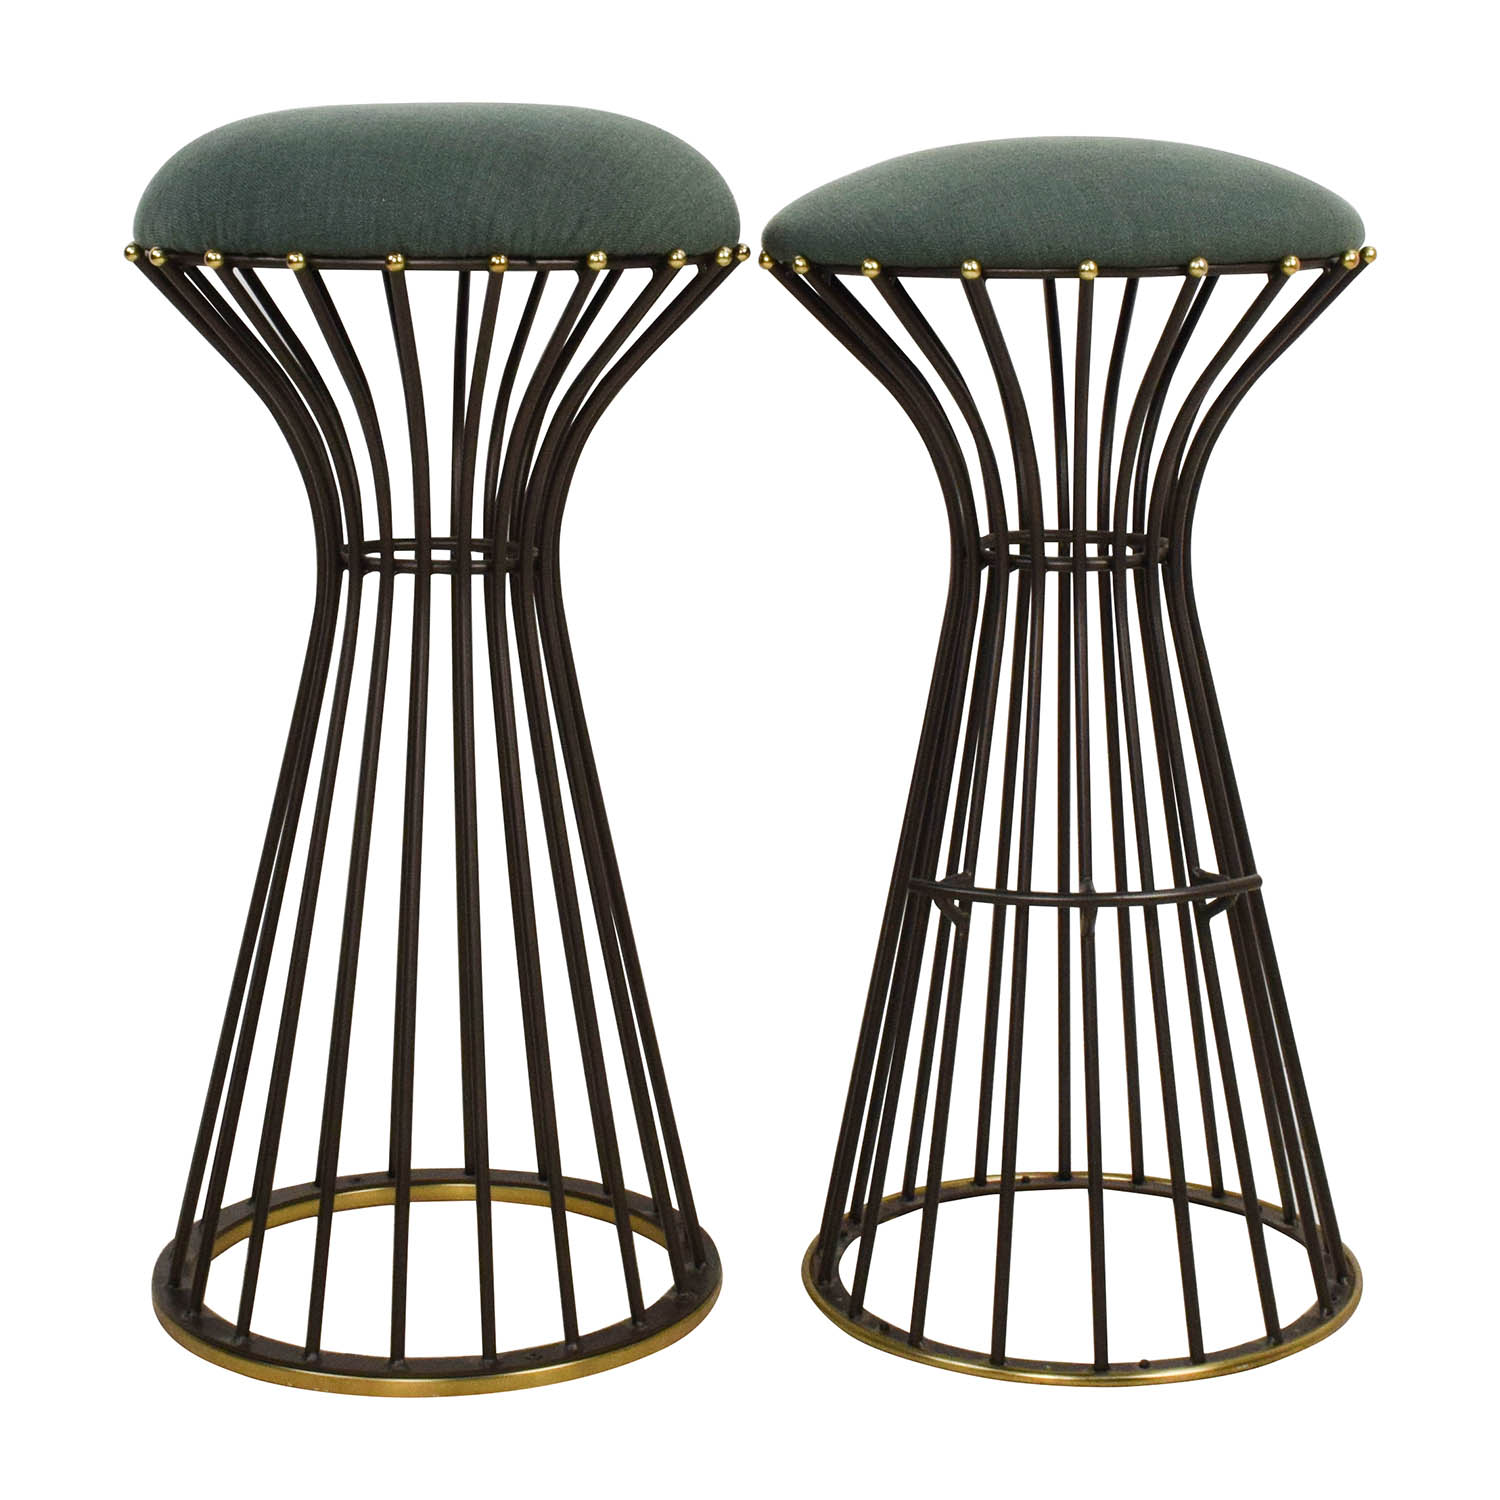 Upholstered Bar Stools on sale